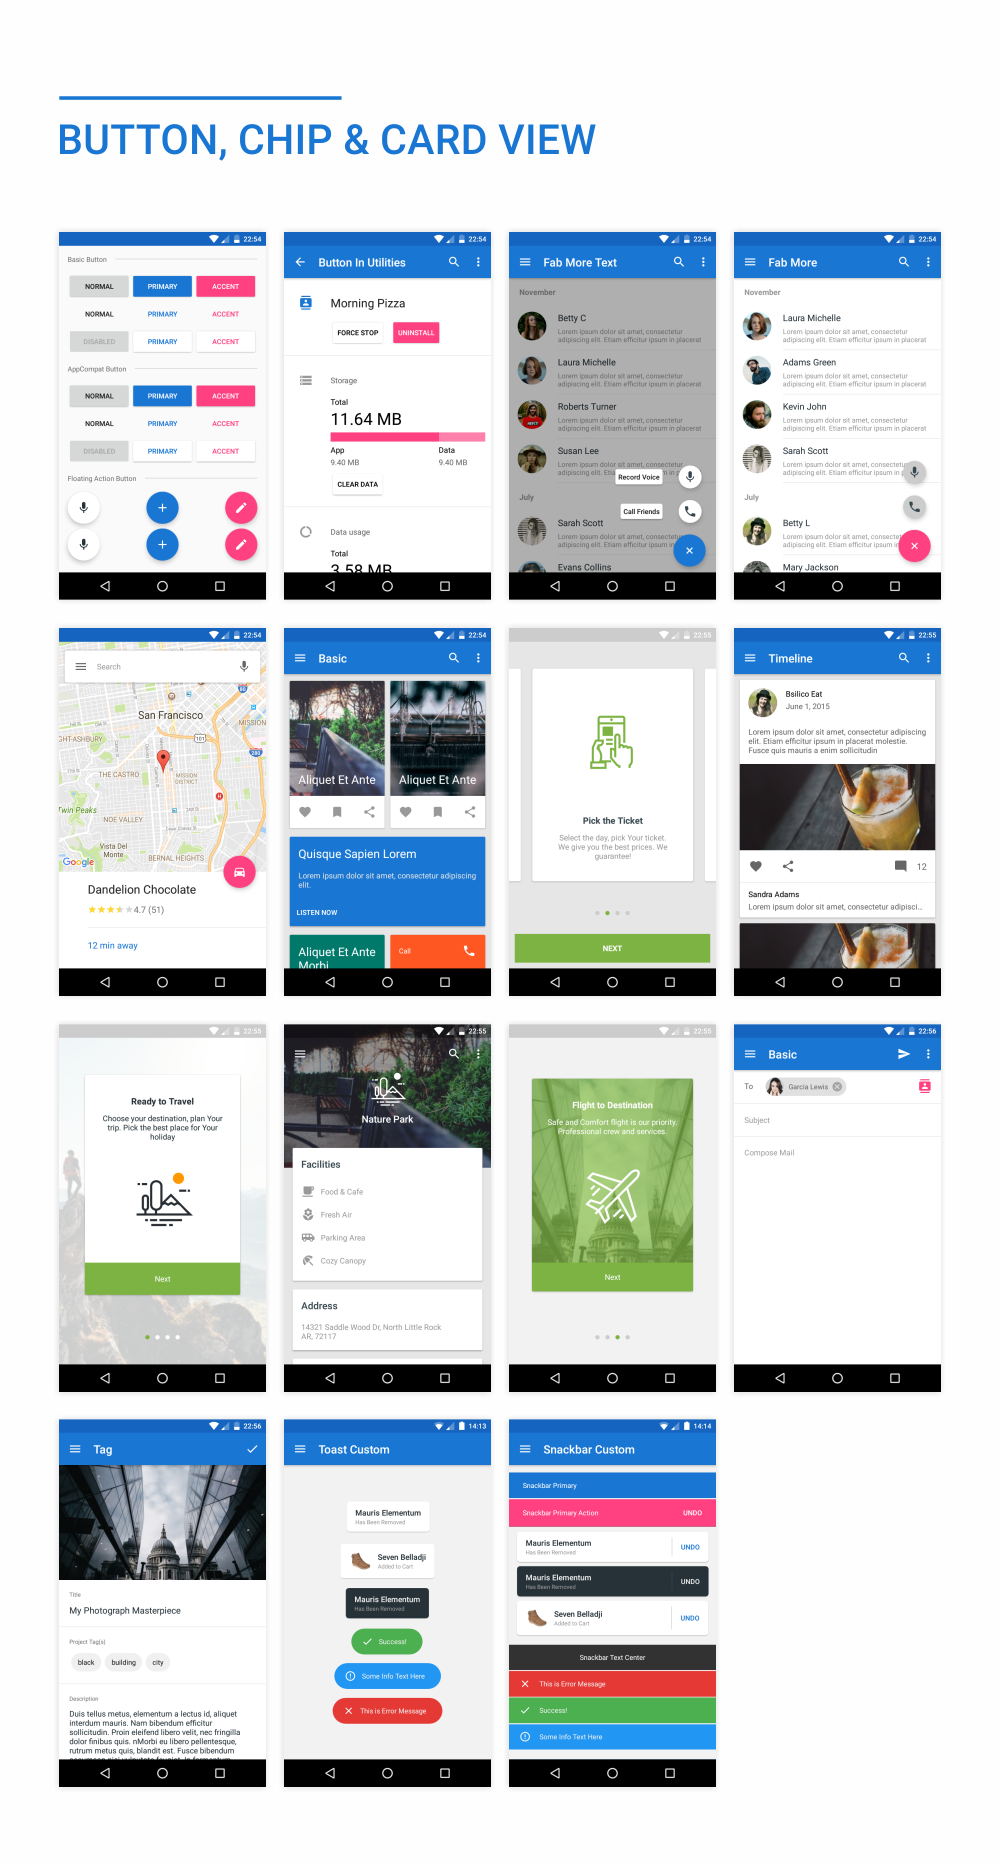 MaterialX - Android Material Design UI Components 2.4 - 35